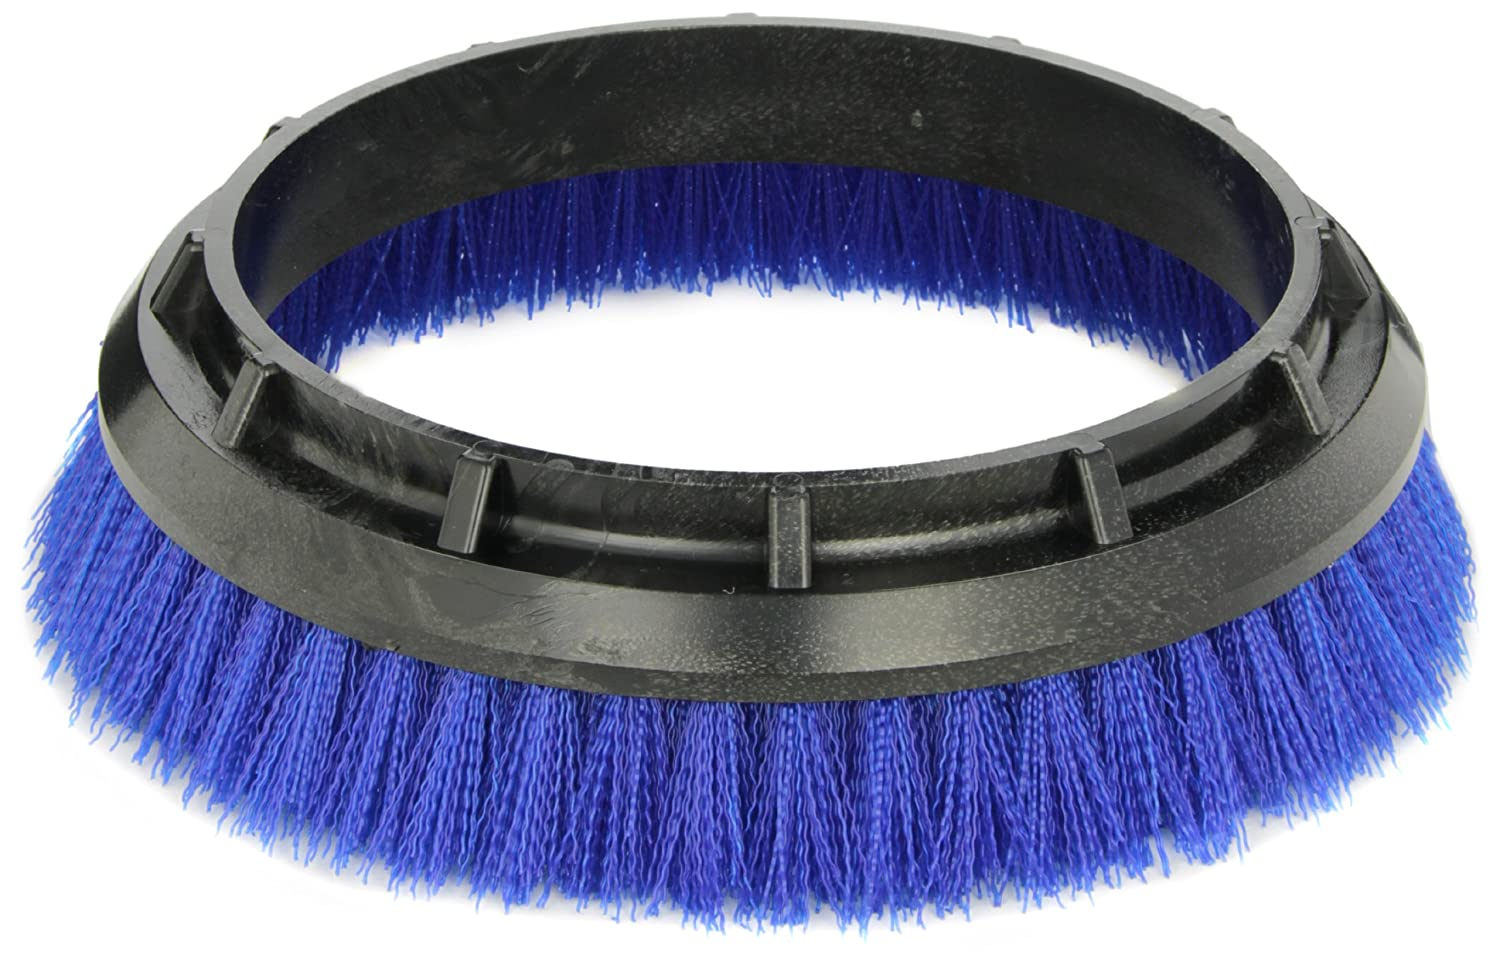 Oreck Commercial 237.058 Crimped Polypropylene Scrub Brush, 12-Inch Diameter, 0.020-Inch Bristle Diameter, for 550MC Orbiter Floor Machine, Blue 237058